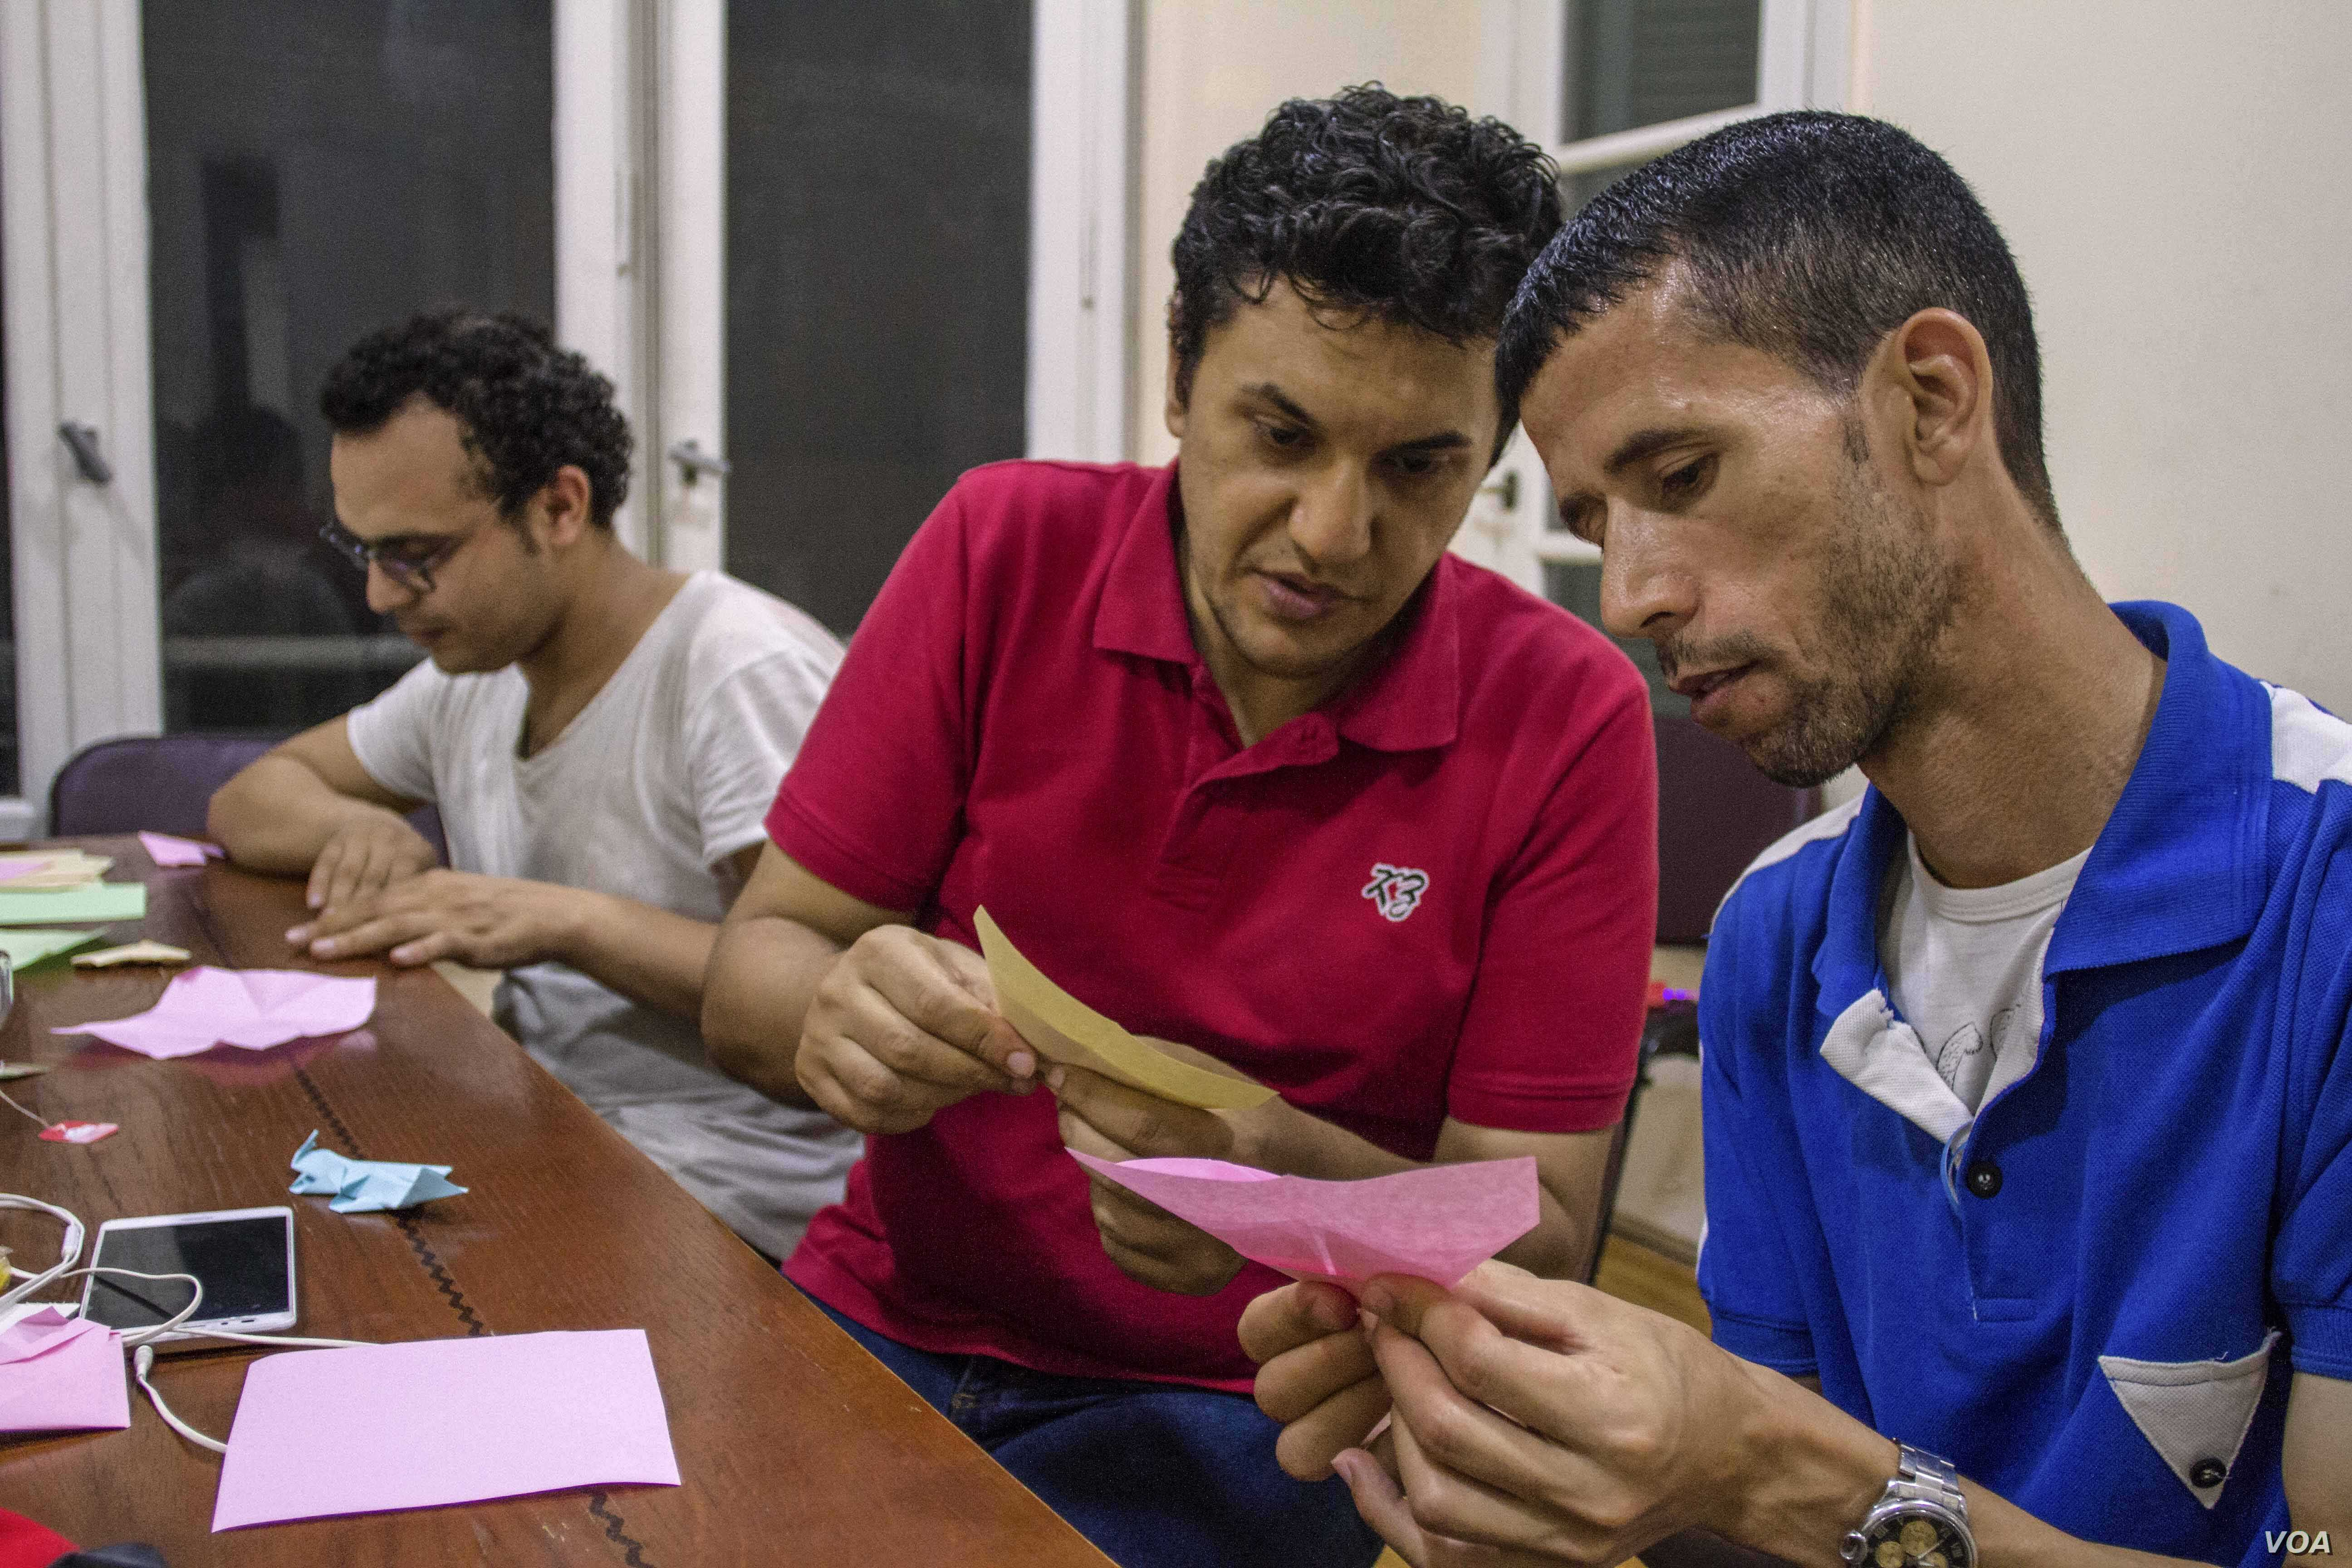 Egyptian prisons administrators don't allow any type of gift if it can be turned into a hard or sharp object. In Cairo, Egypt. Friday, July 21, 2017. (H. Elrasam/VOA)